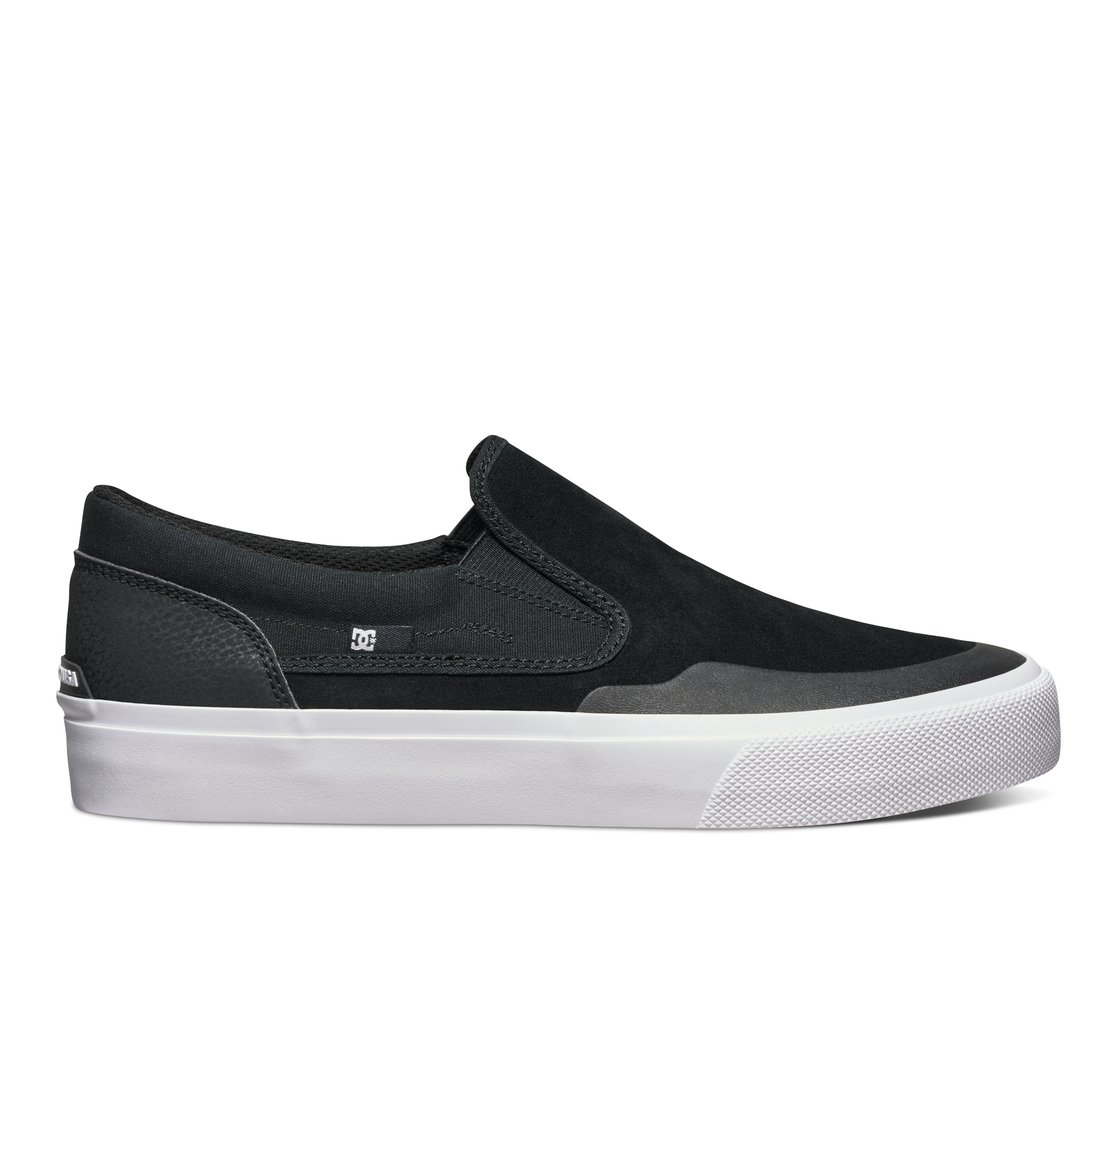 DC - - Frauen Trase Slip-On X Skate-Schuhe, EUR: 42.5, Black/White